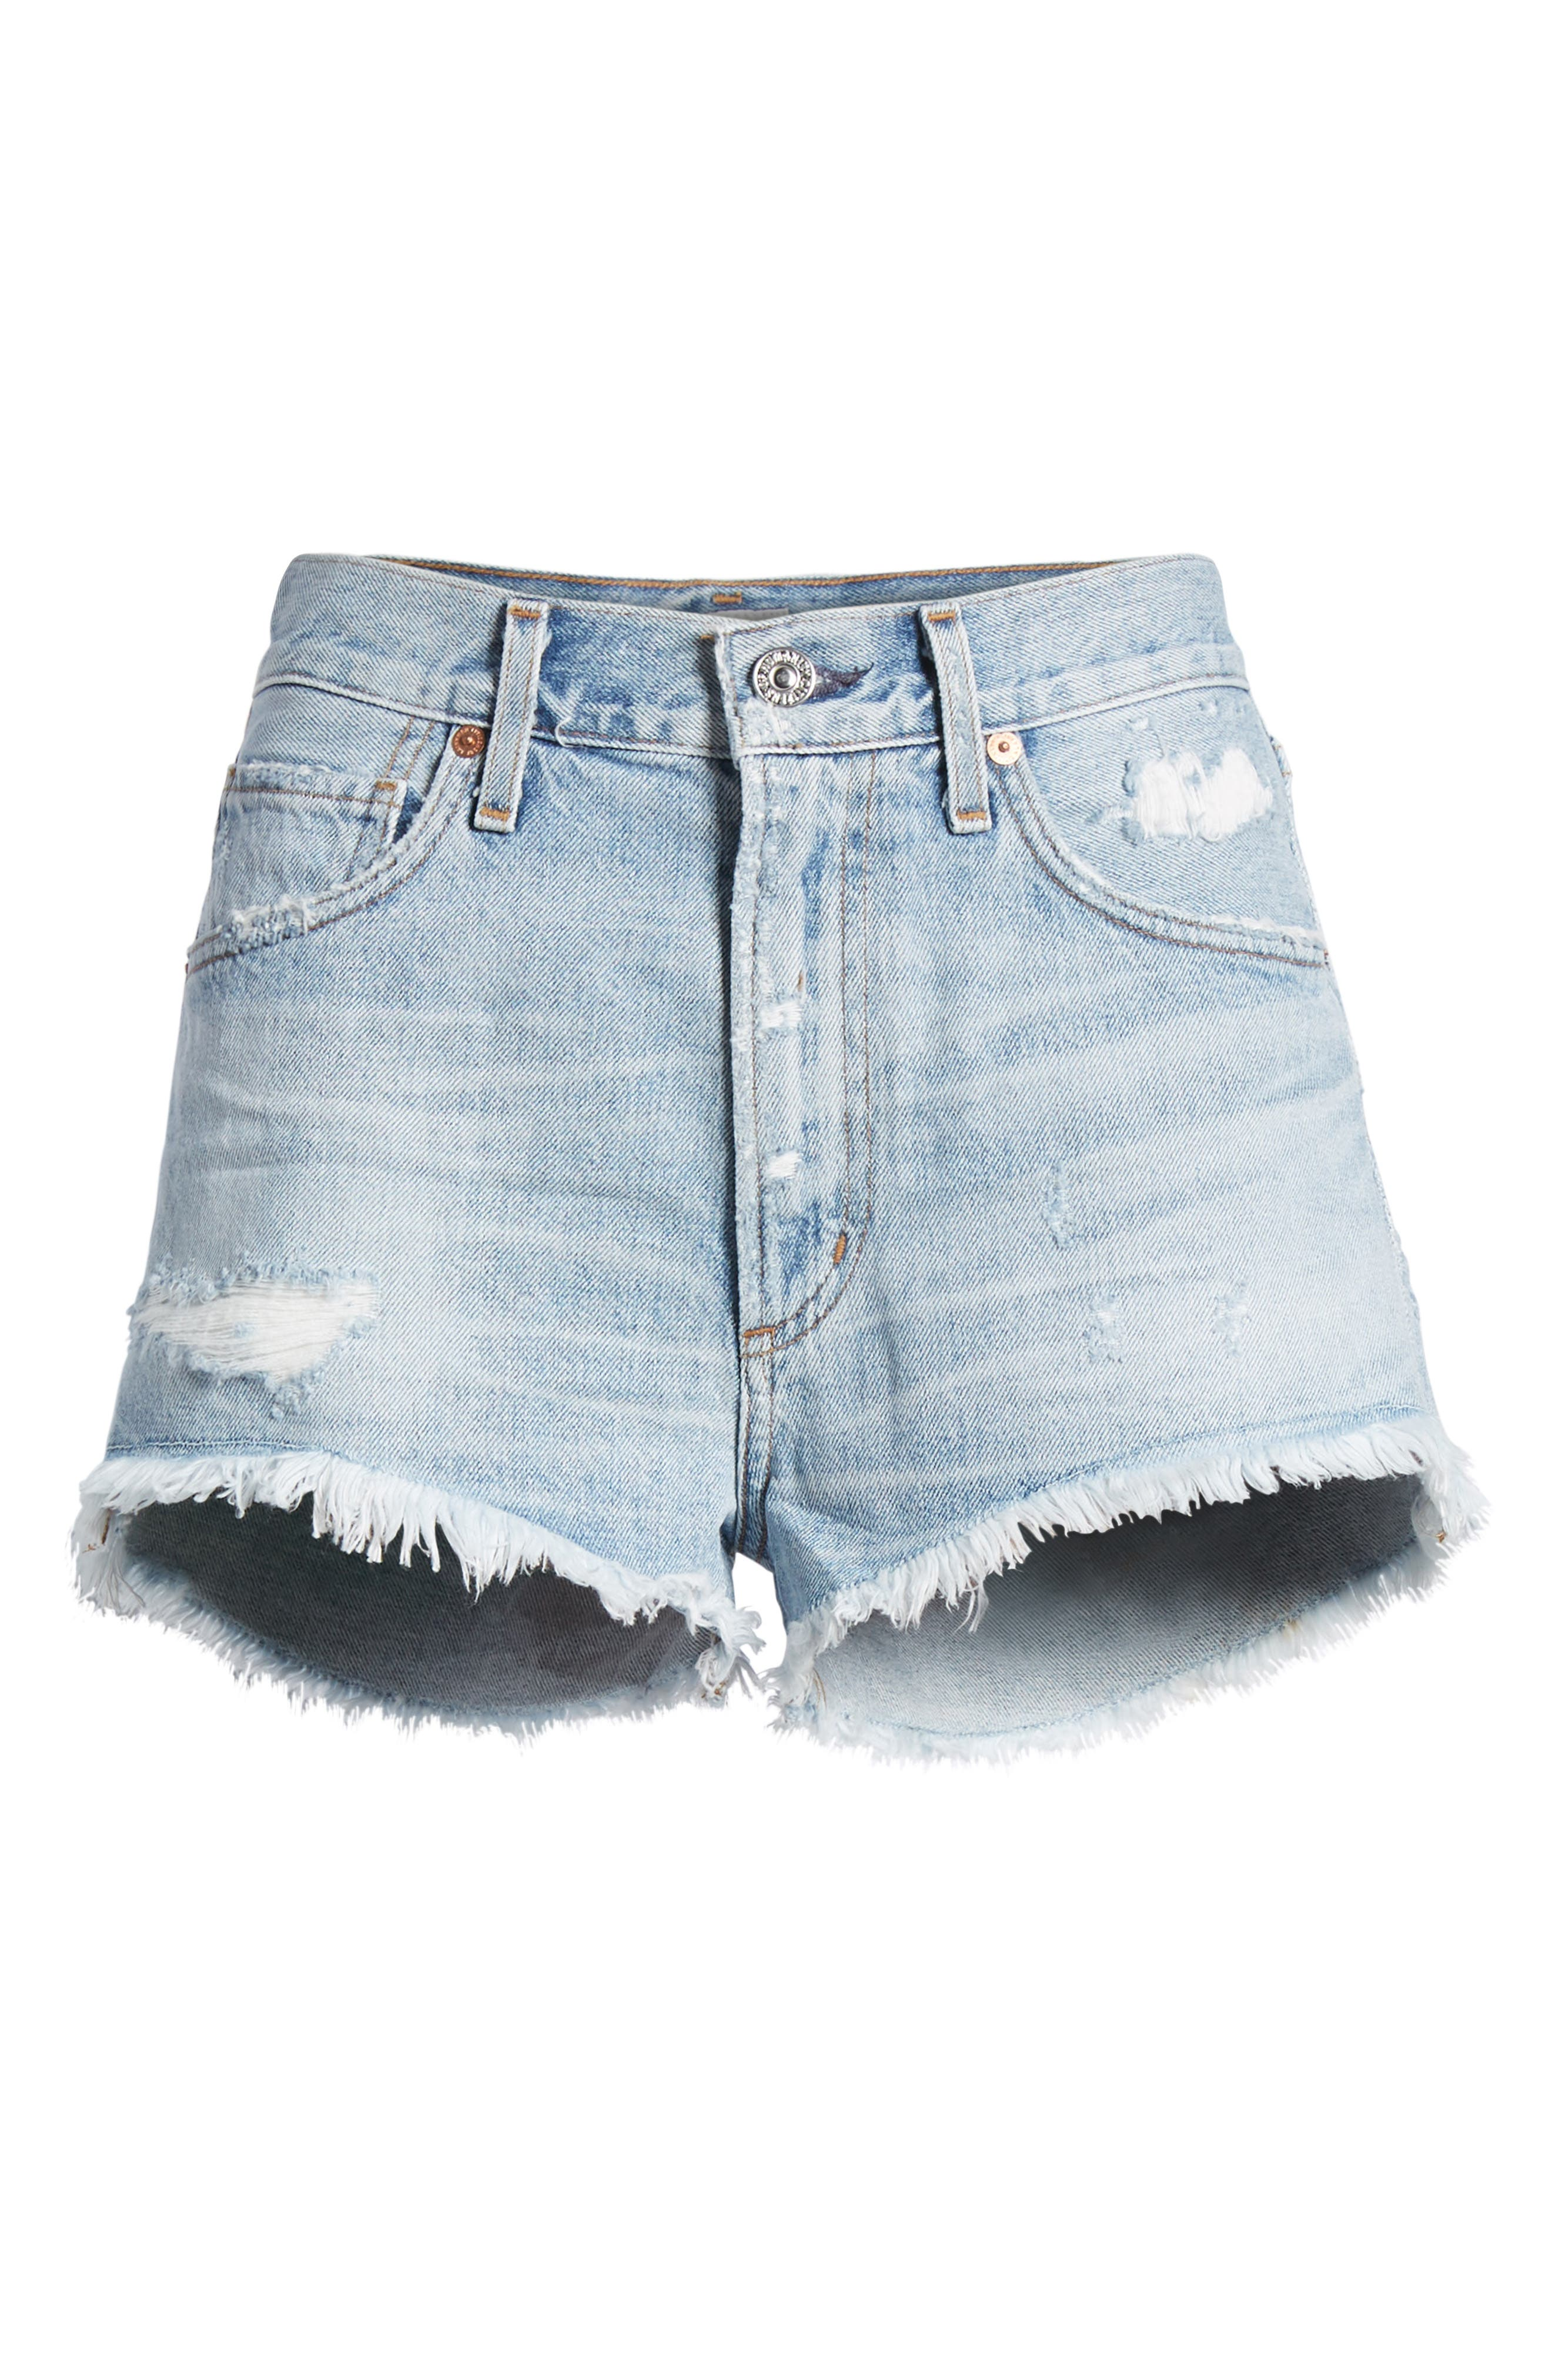 Danielle Cutoff Shorts,                             Alternate thumbnail 7, color,                             454